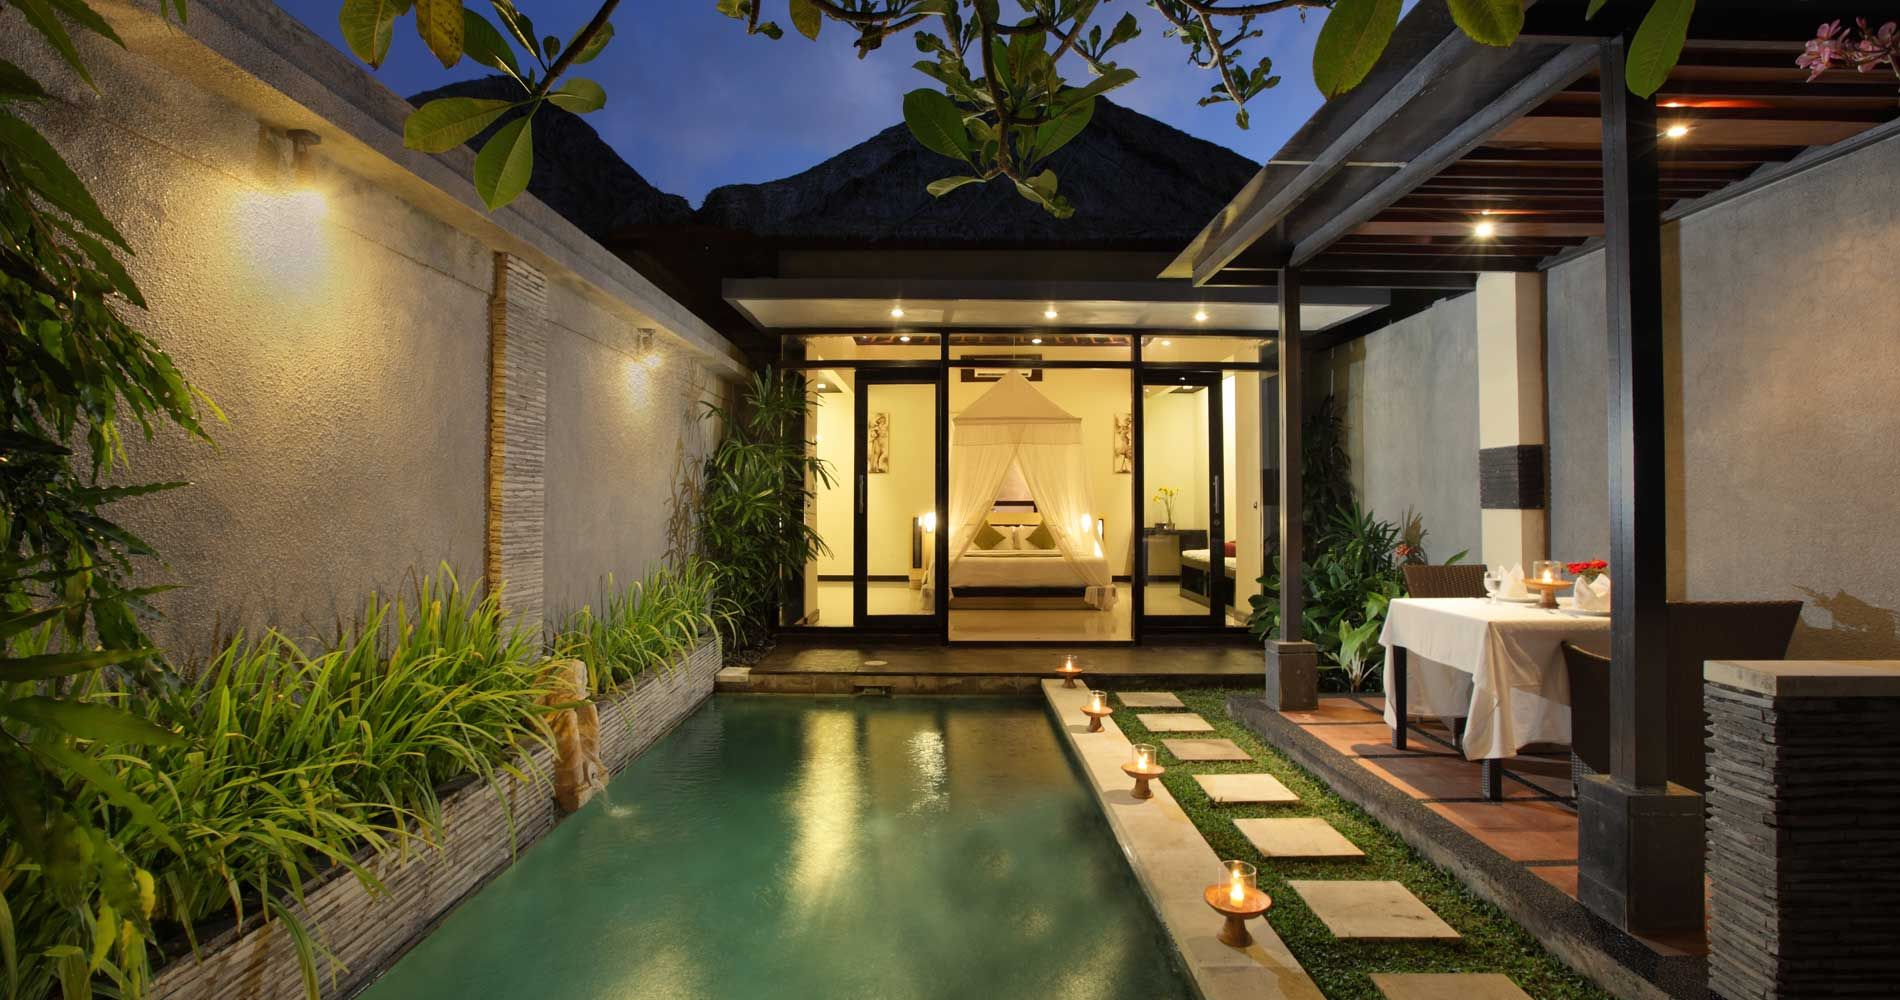 Private pool tonys villa travel dreams pinterest for Small private hotels